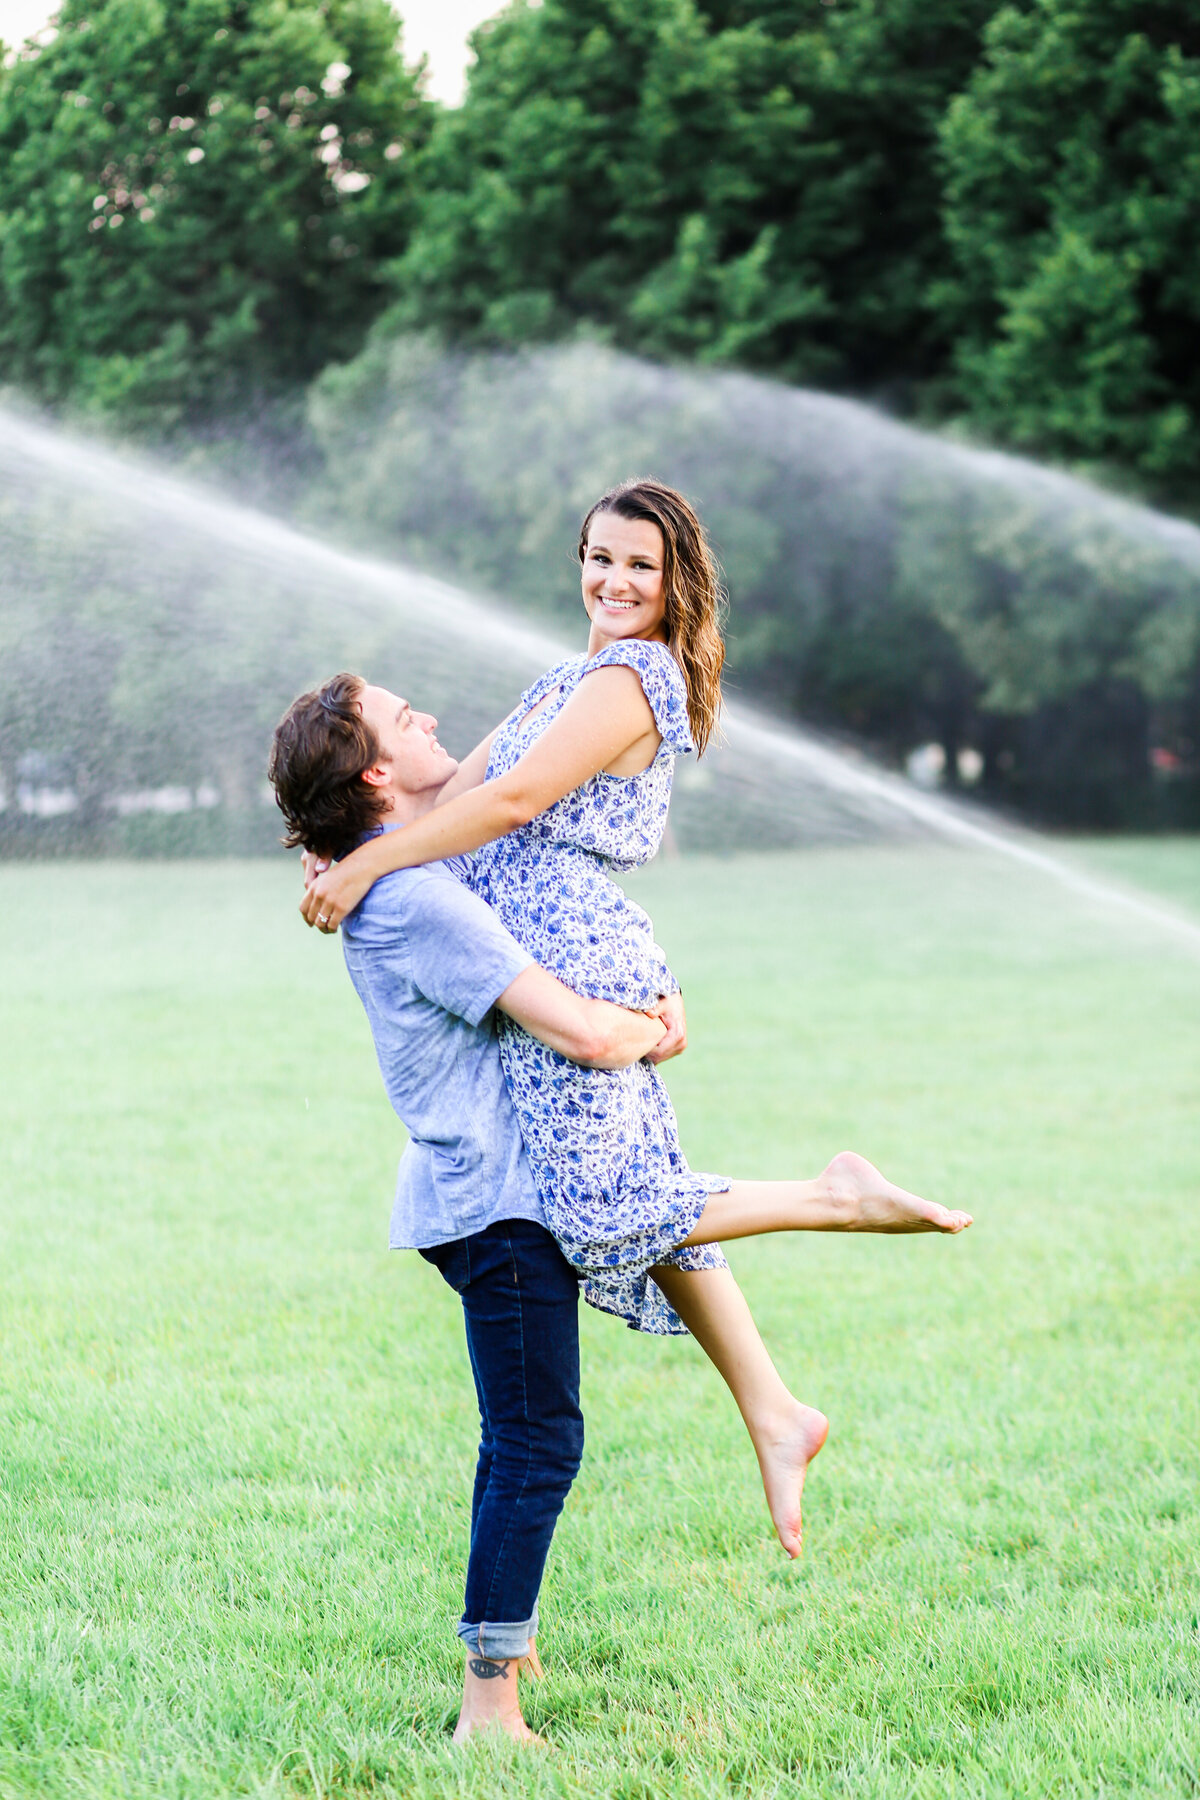 Jessica + Jacob - Kansas City Engagement Portraits (211 of 217)